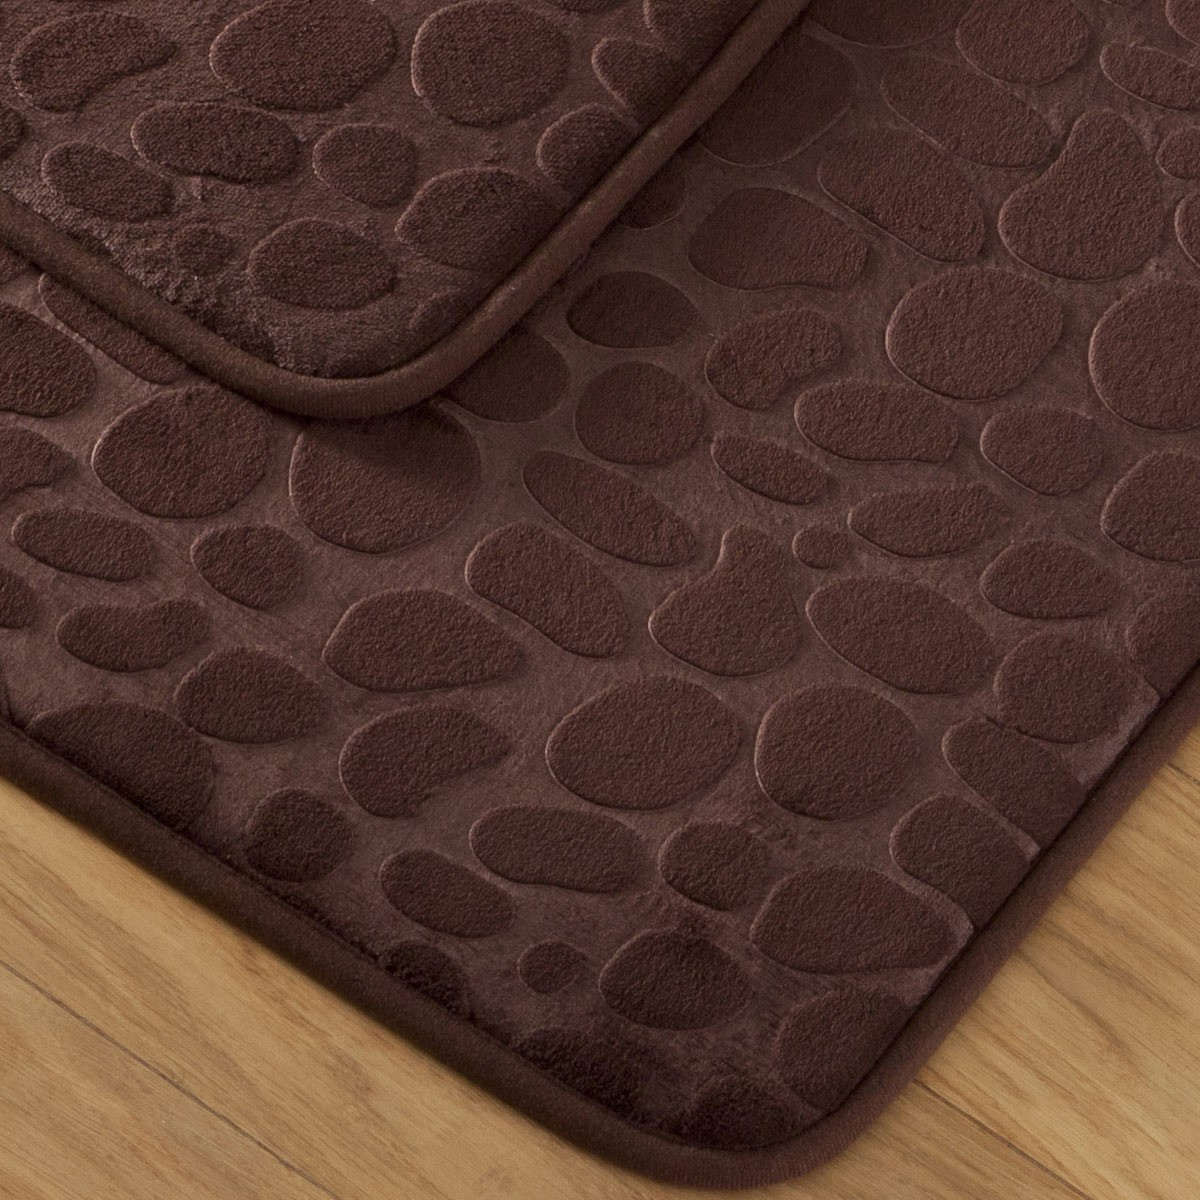 tapis bain galet marron linge de maison tradition des vosges with tapis de bain galet. Black Bedroom Furniture Sets. Home Design Ideas